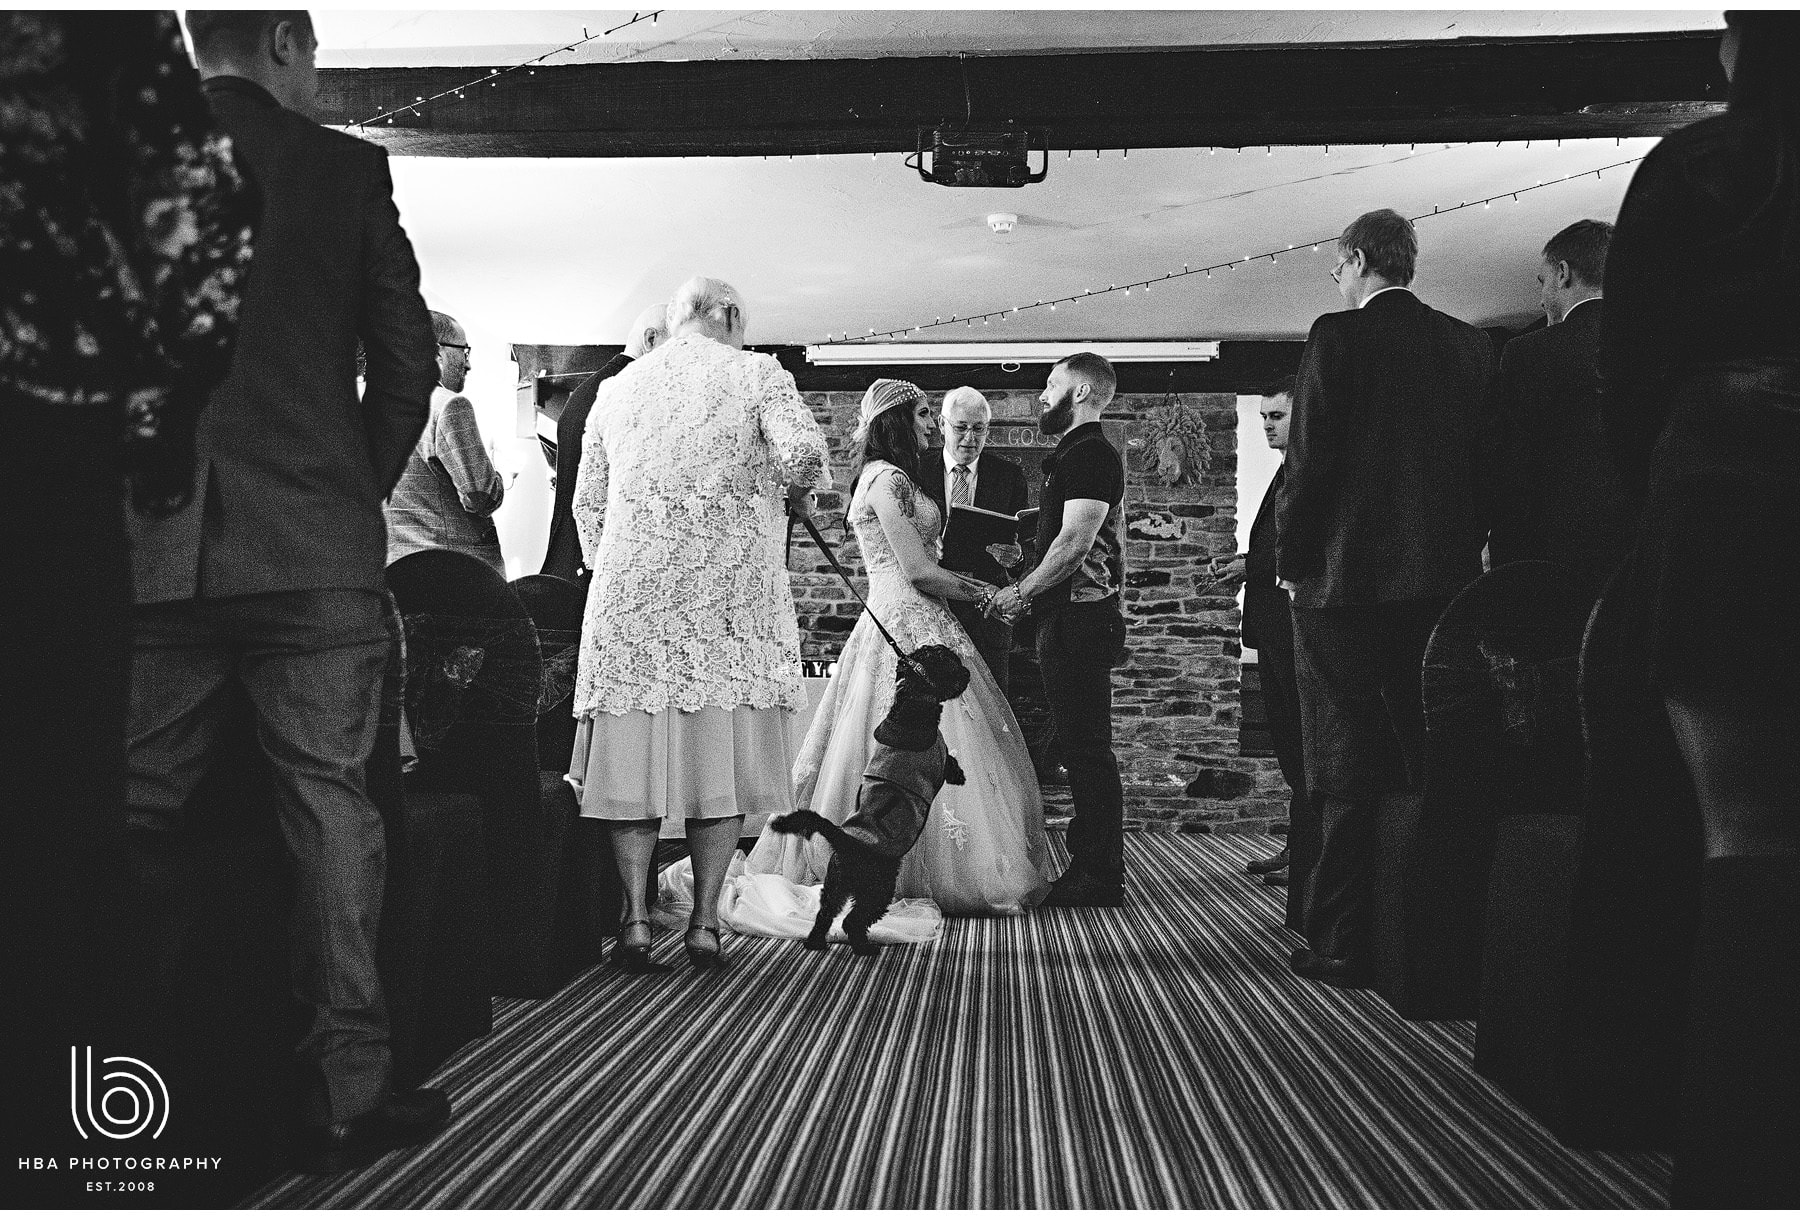 the wedding ceremony with the couple's dog